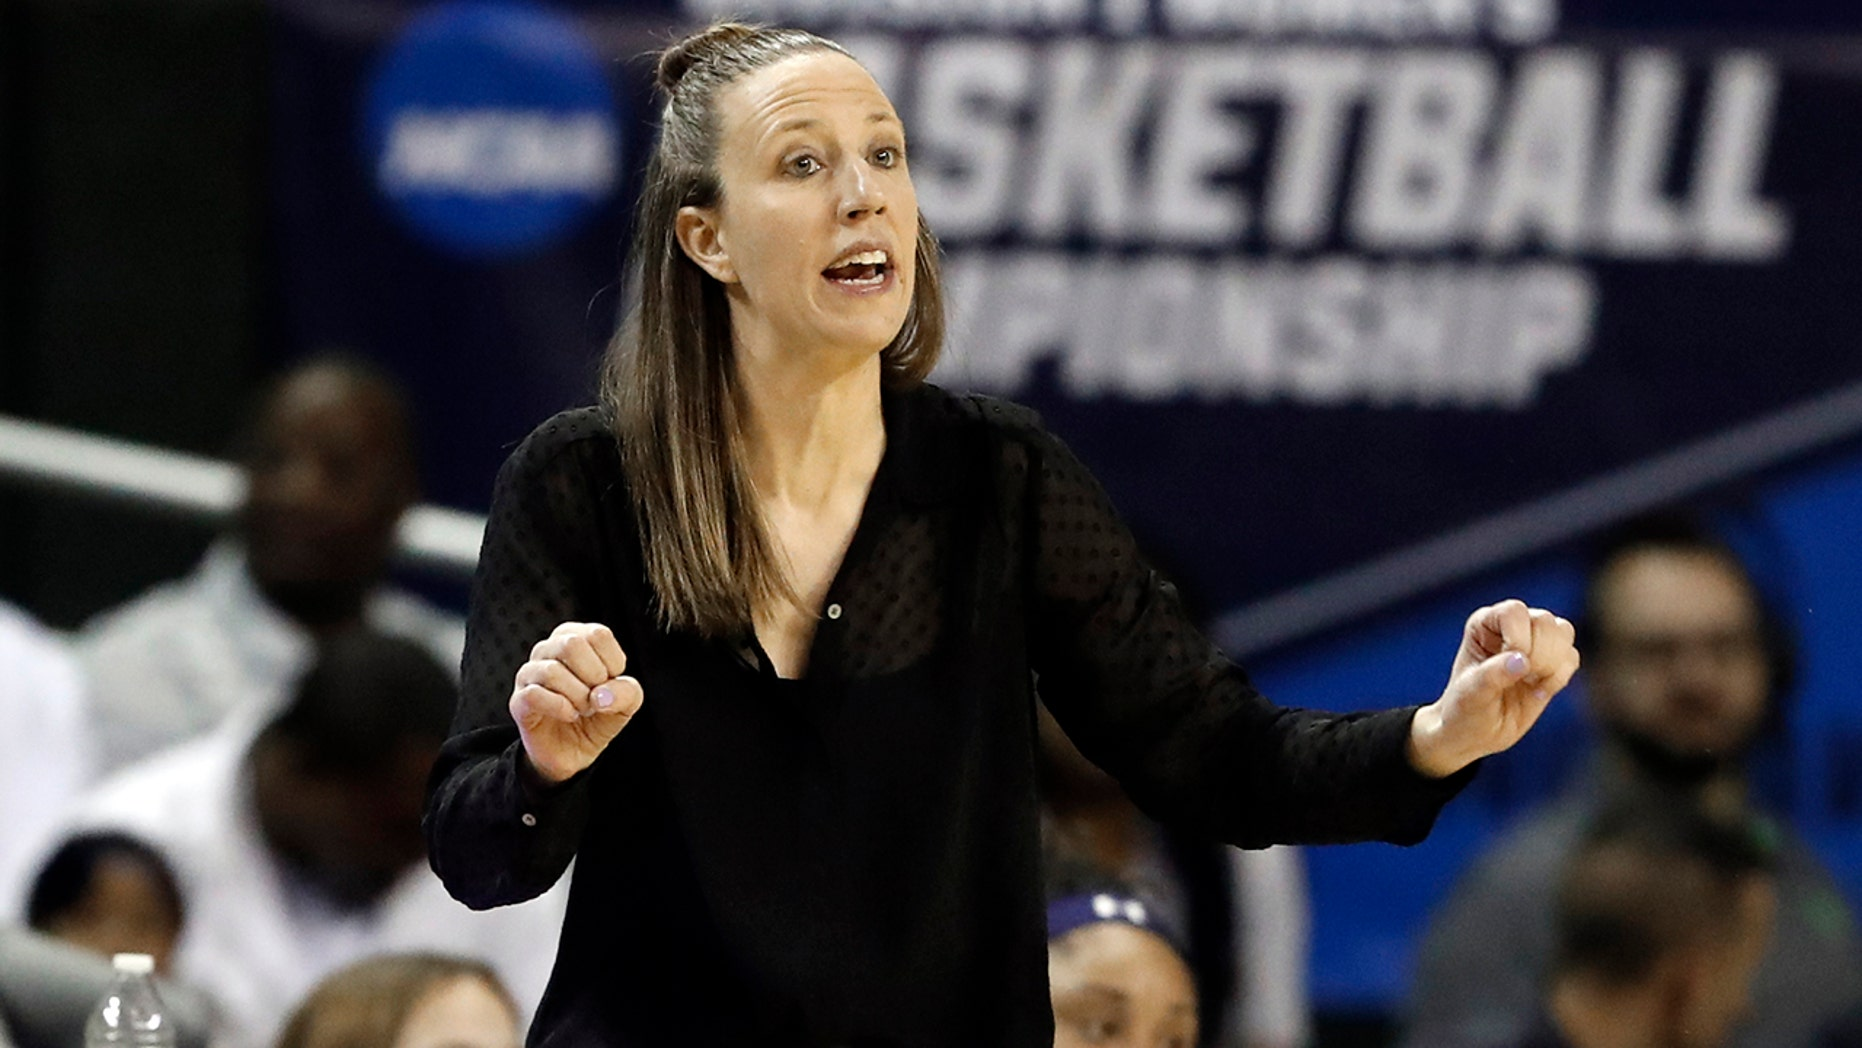 The Cavaliers have hired former California coach Lindsay Gottlieb as an assistant on John Beilein's staff. Gottlieb joins Beilein's staff after serving eight years as the University of California, Berkeley women's basketball head coach, where she led the Golden Bears to a combined 179-89 (.668) record (86-58, .597 in Pac-12) since taking over the helm in 2011-12. (AP Photo/Tony Gutierrez, File)